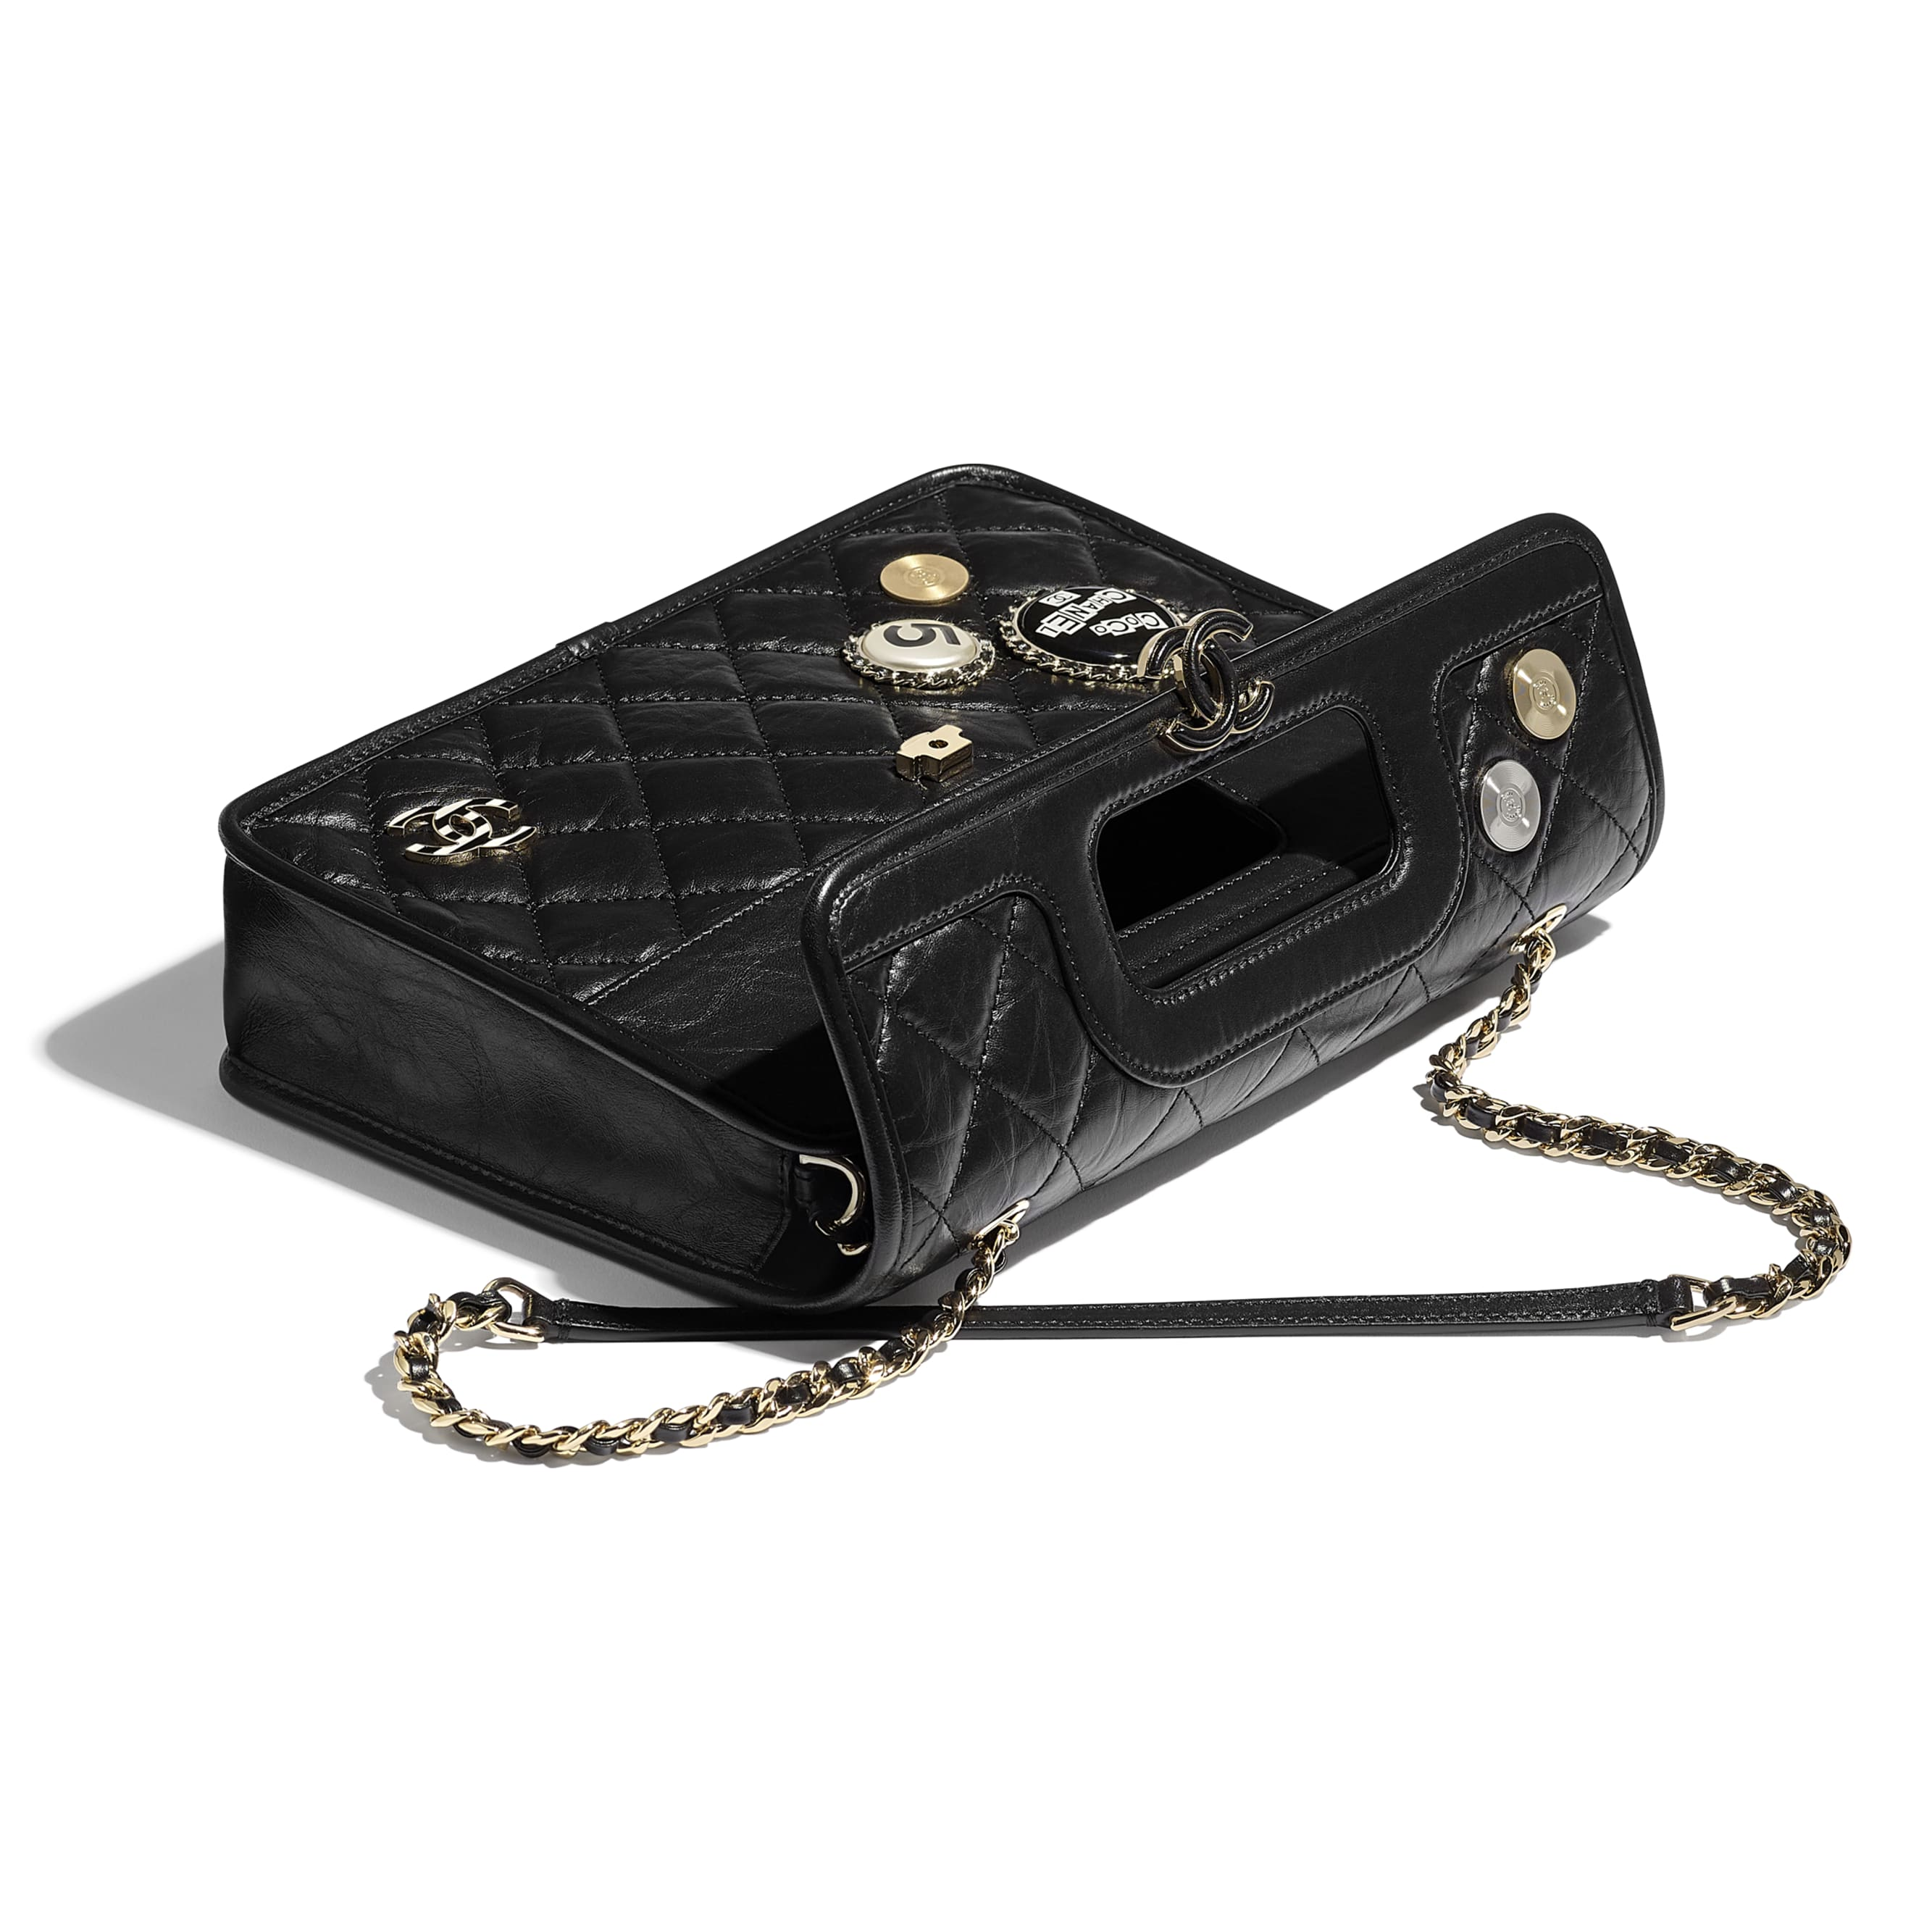 Flap Bag - Black - Aged Calfskin, Charms & Gold-Tone Metal - CHANEL - Extra view - see standard sized version